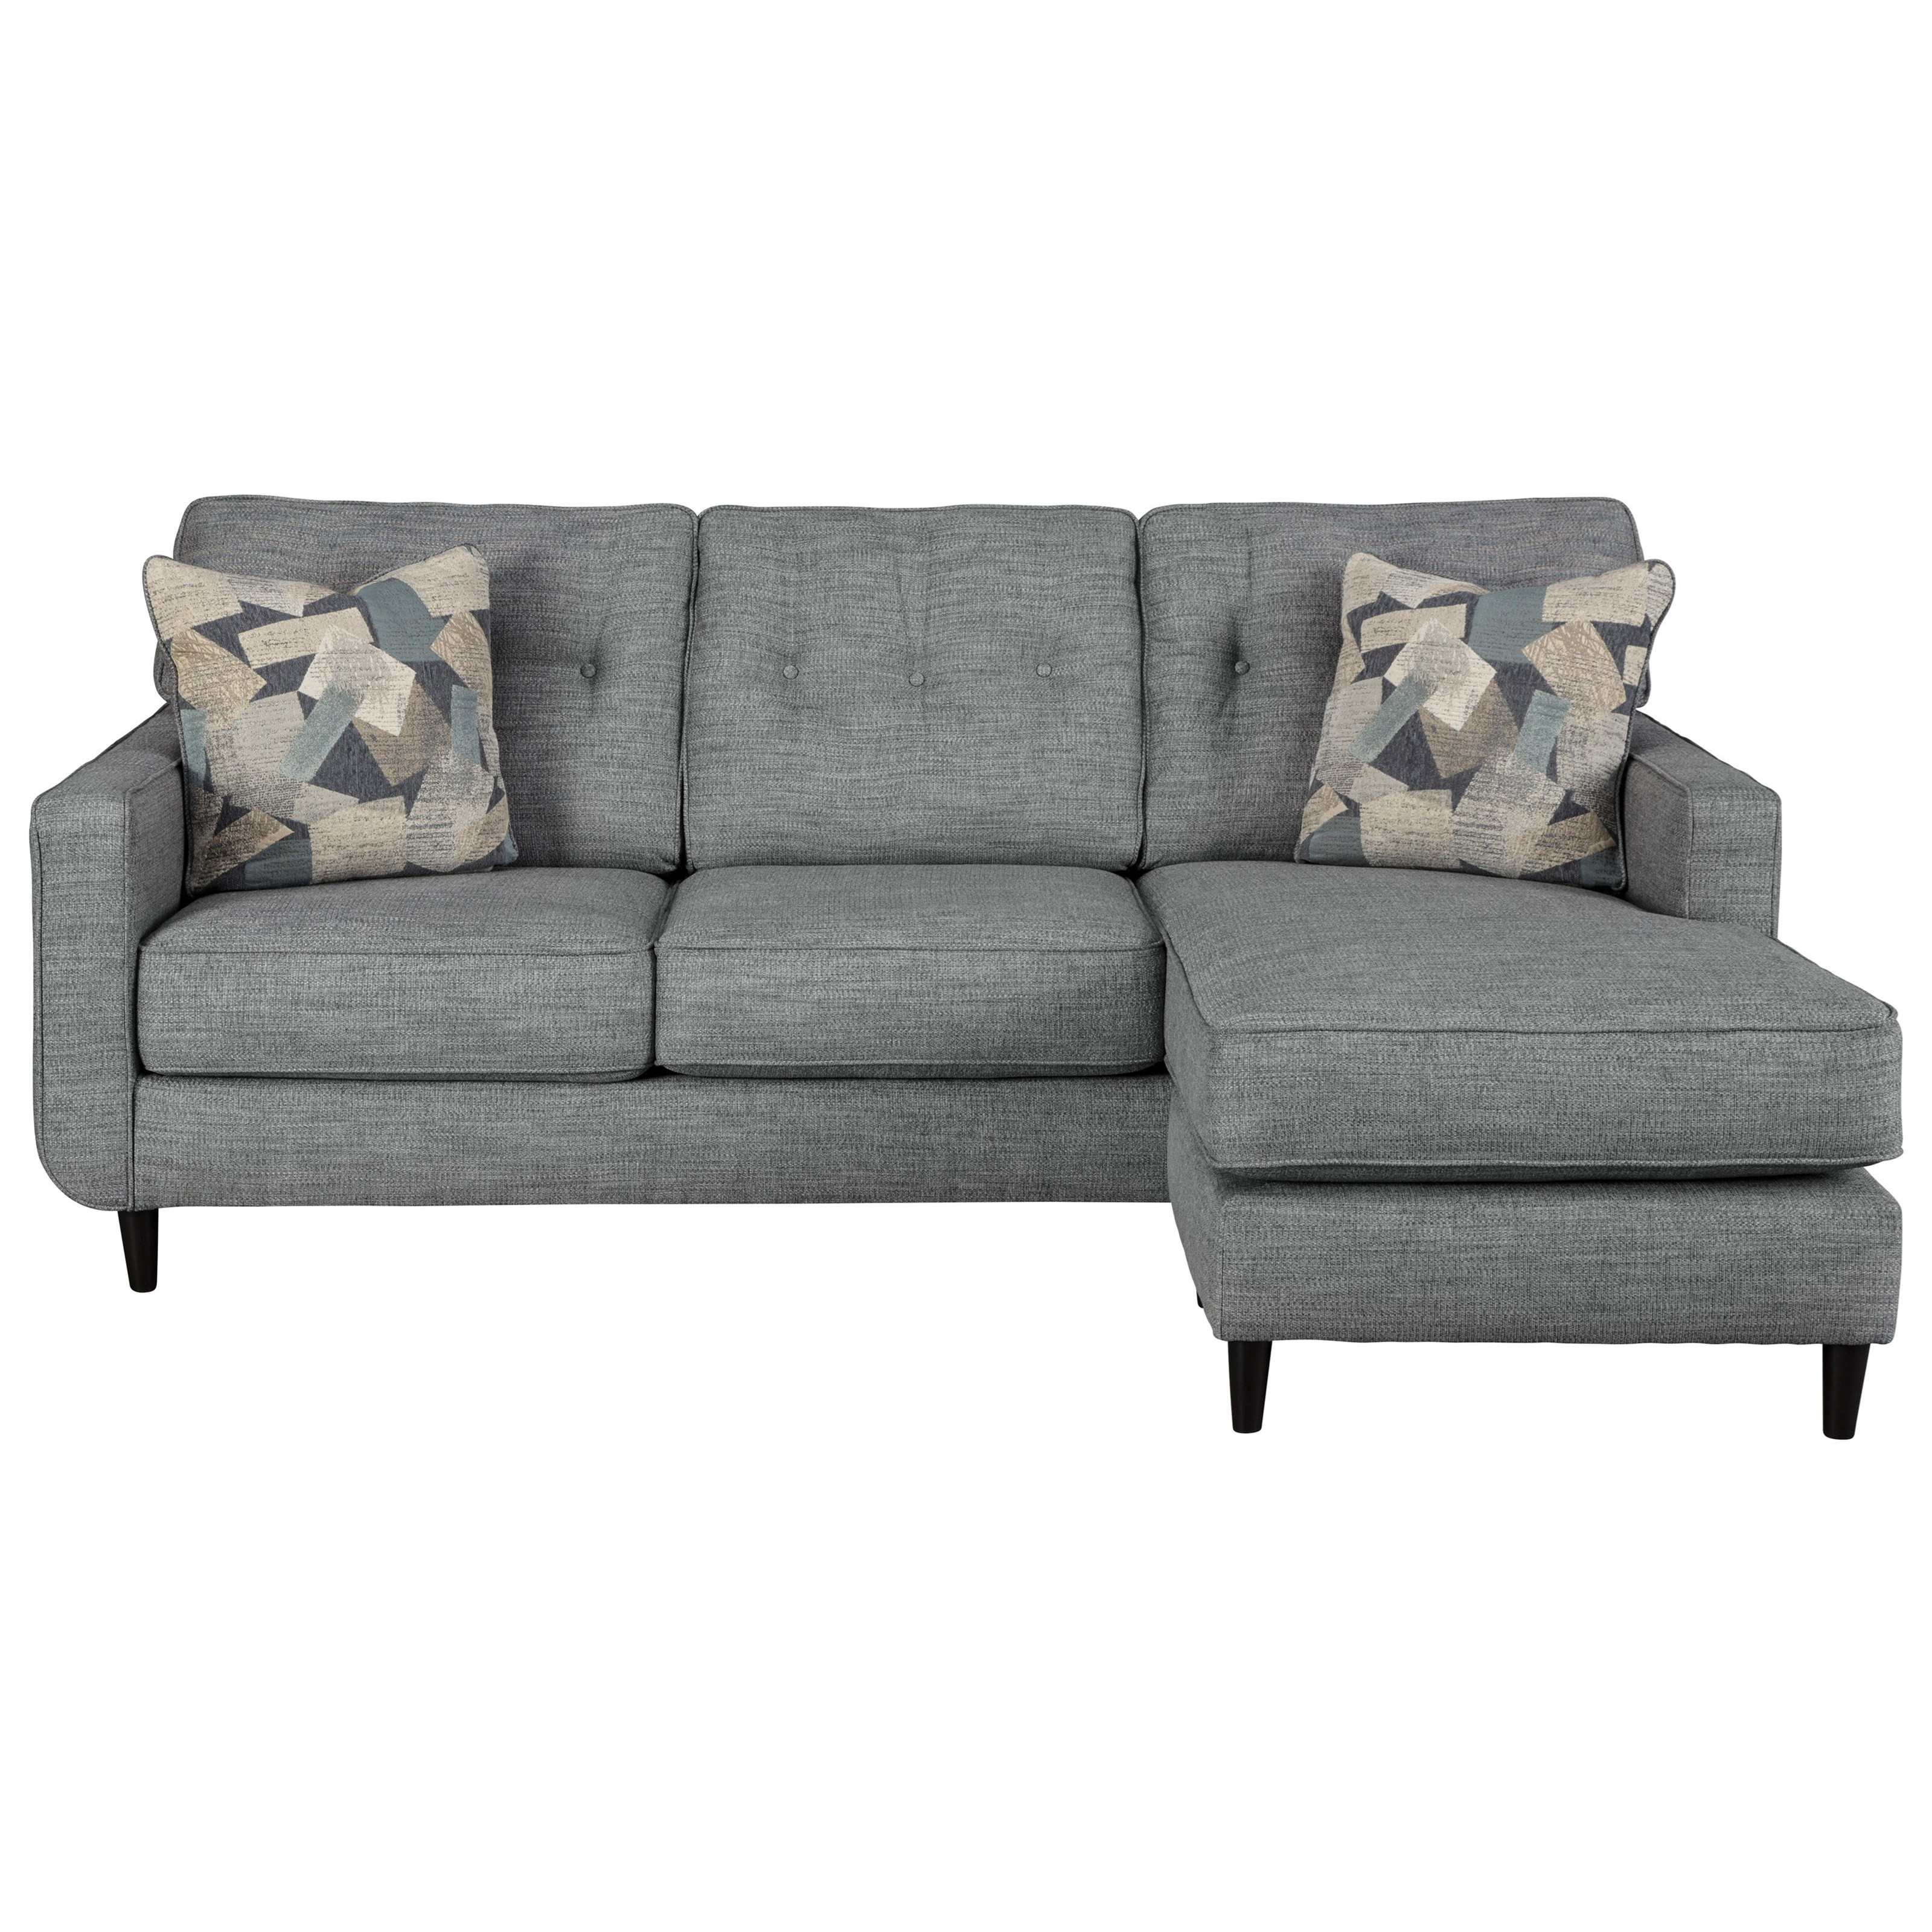 Mandon Mid-Century Modern Sofa with Chaise by Benchcraft by Ashley at Royal  Furniture